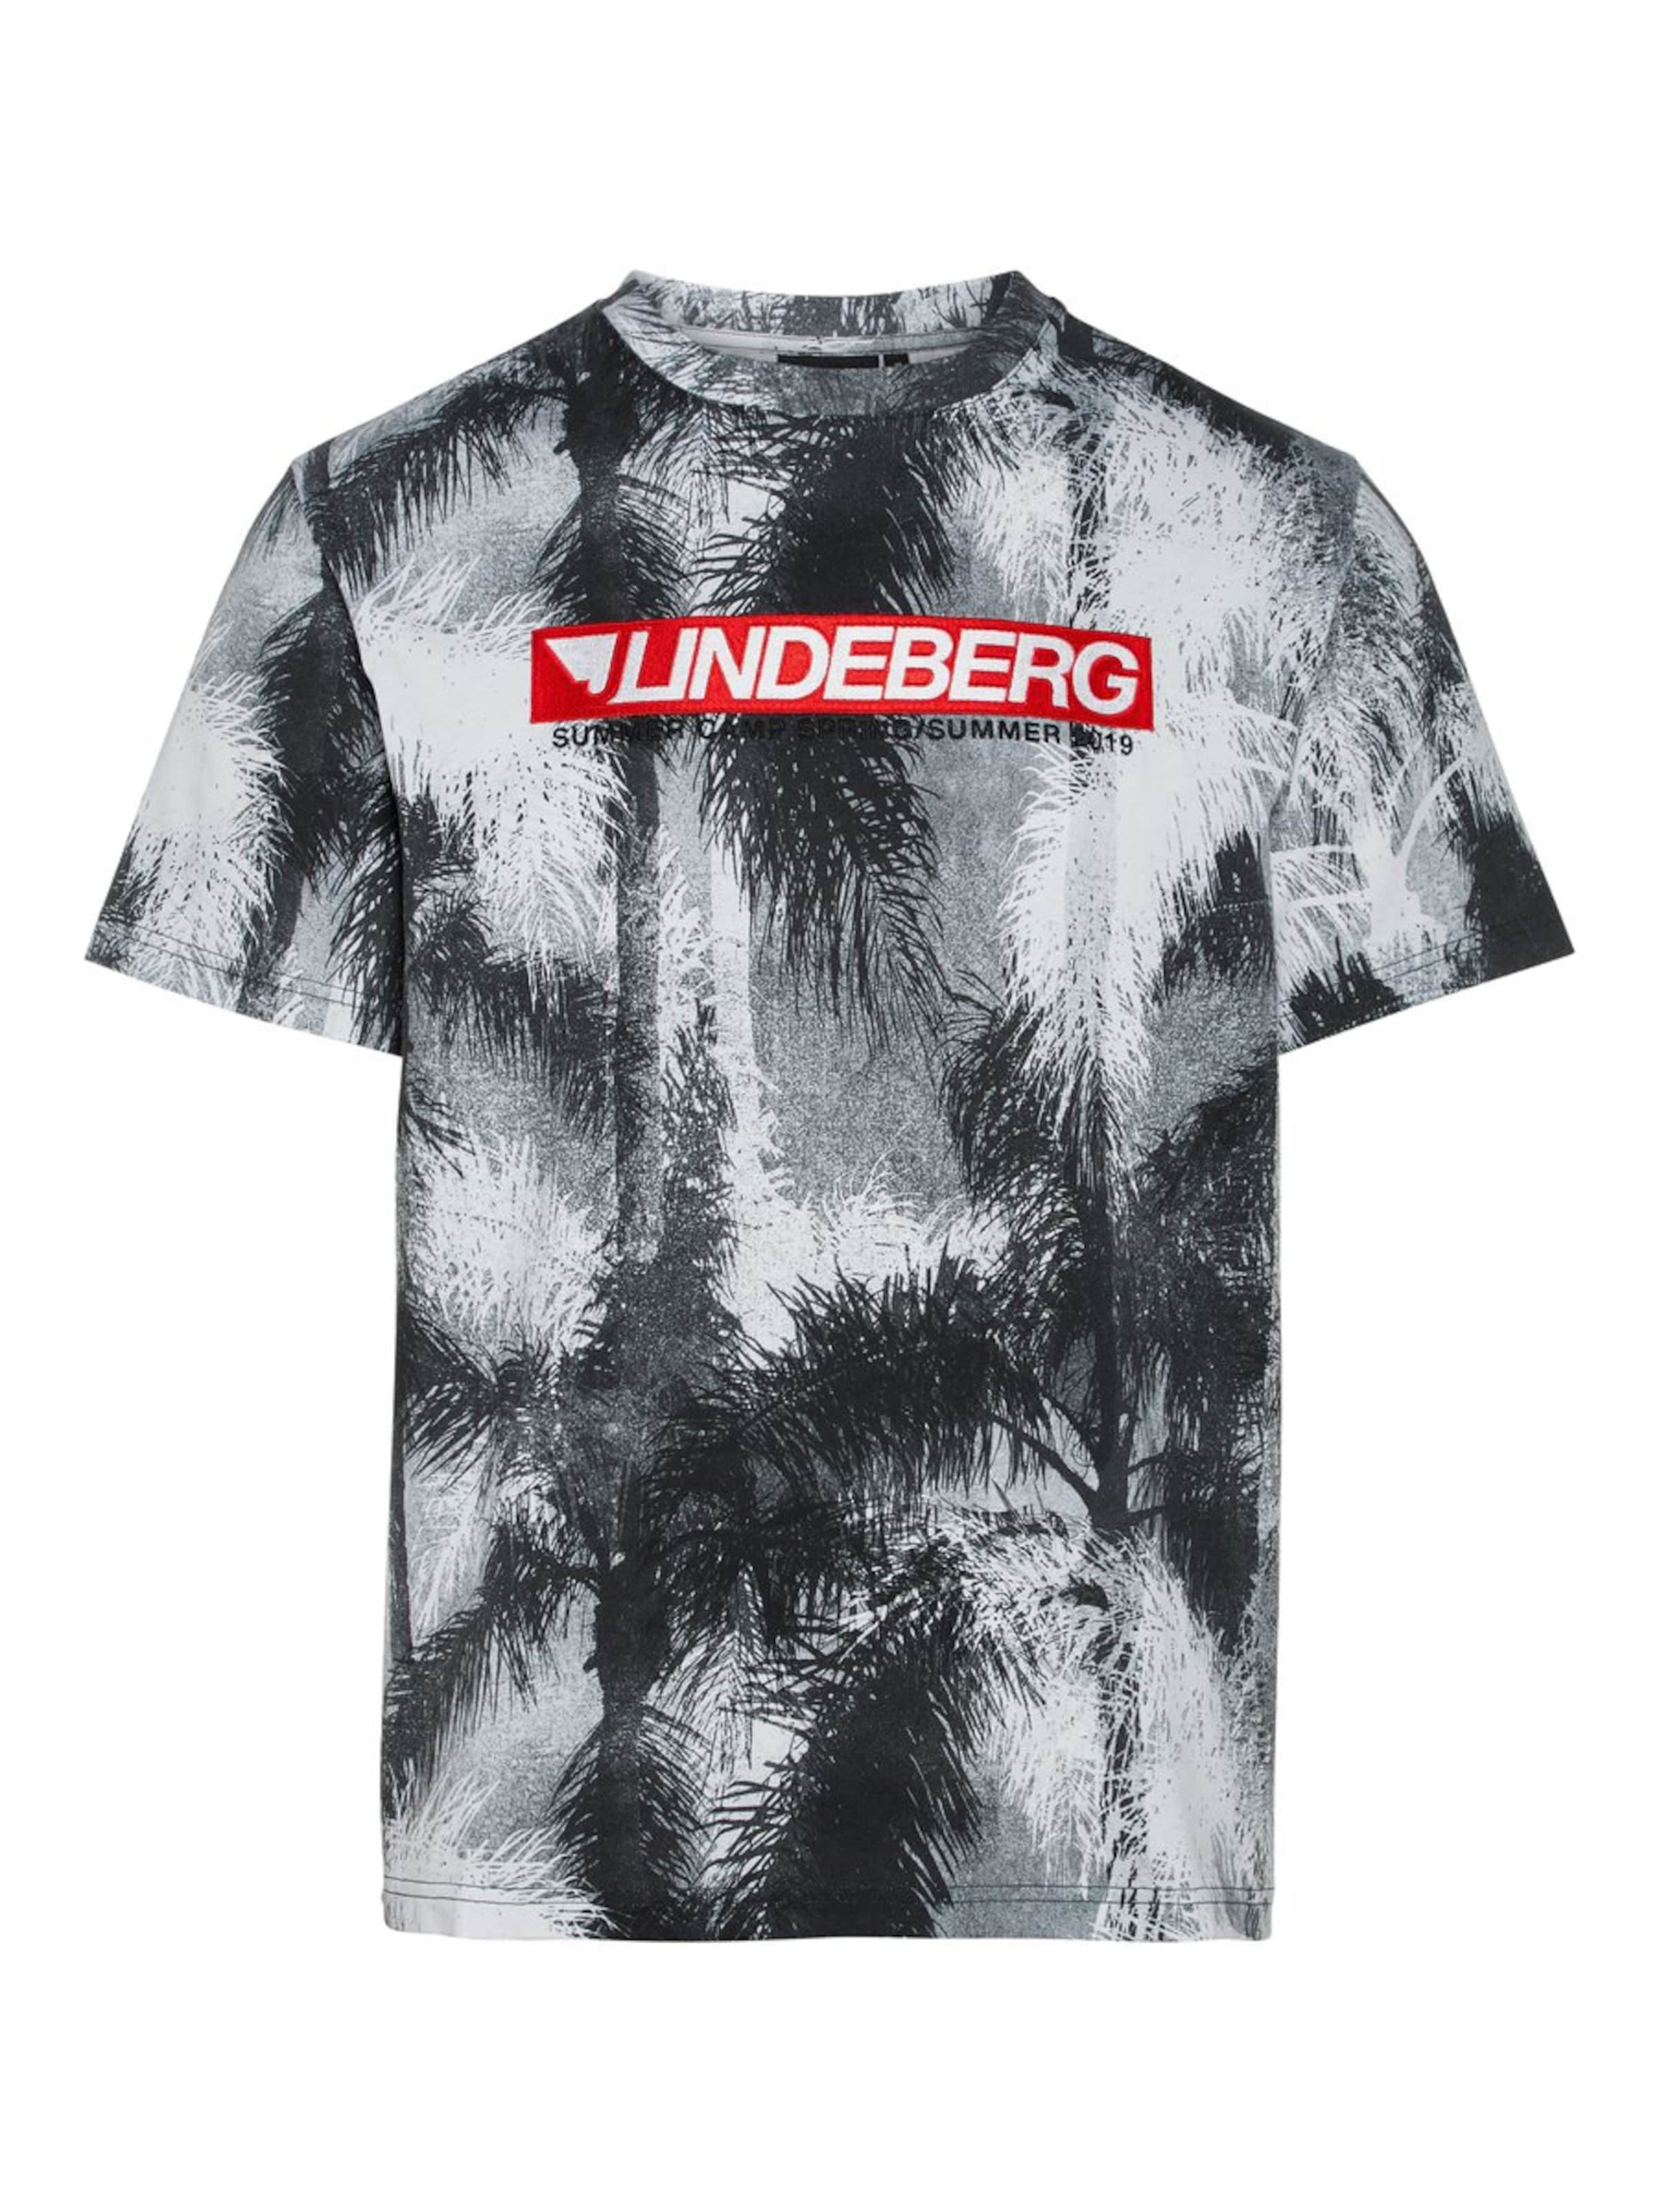 Distinct' lindeberg 'dale In T StoneRot J shirt Weiß H9WED2I